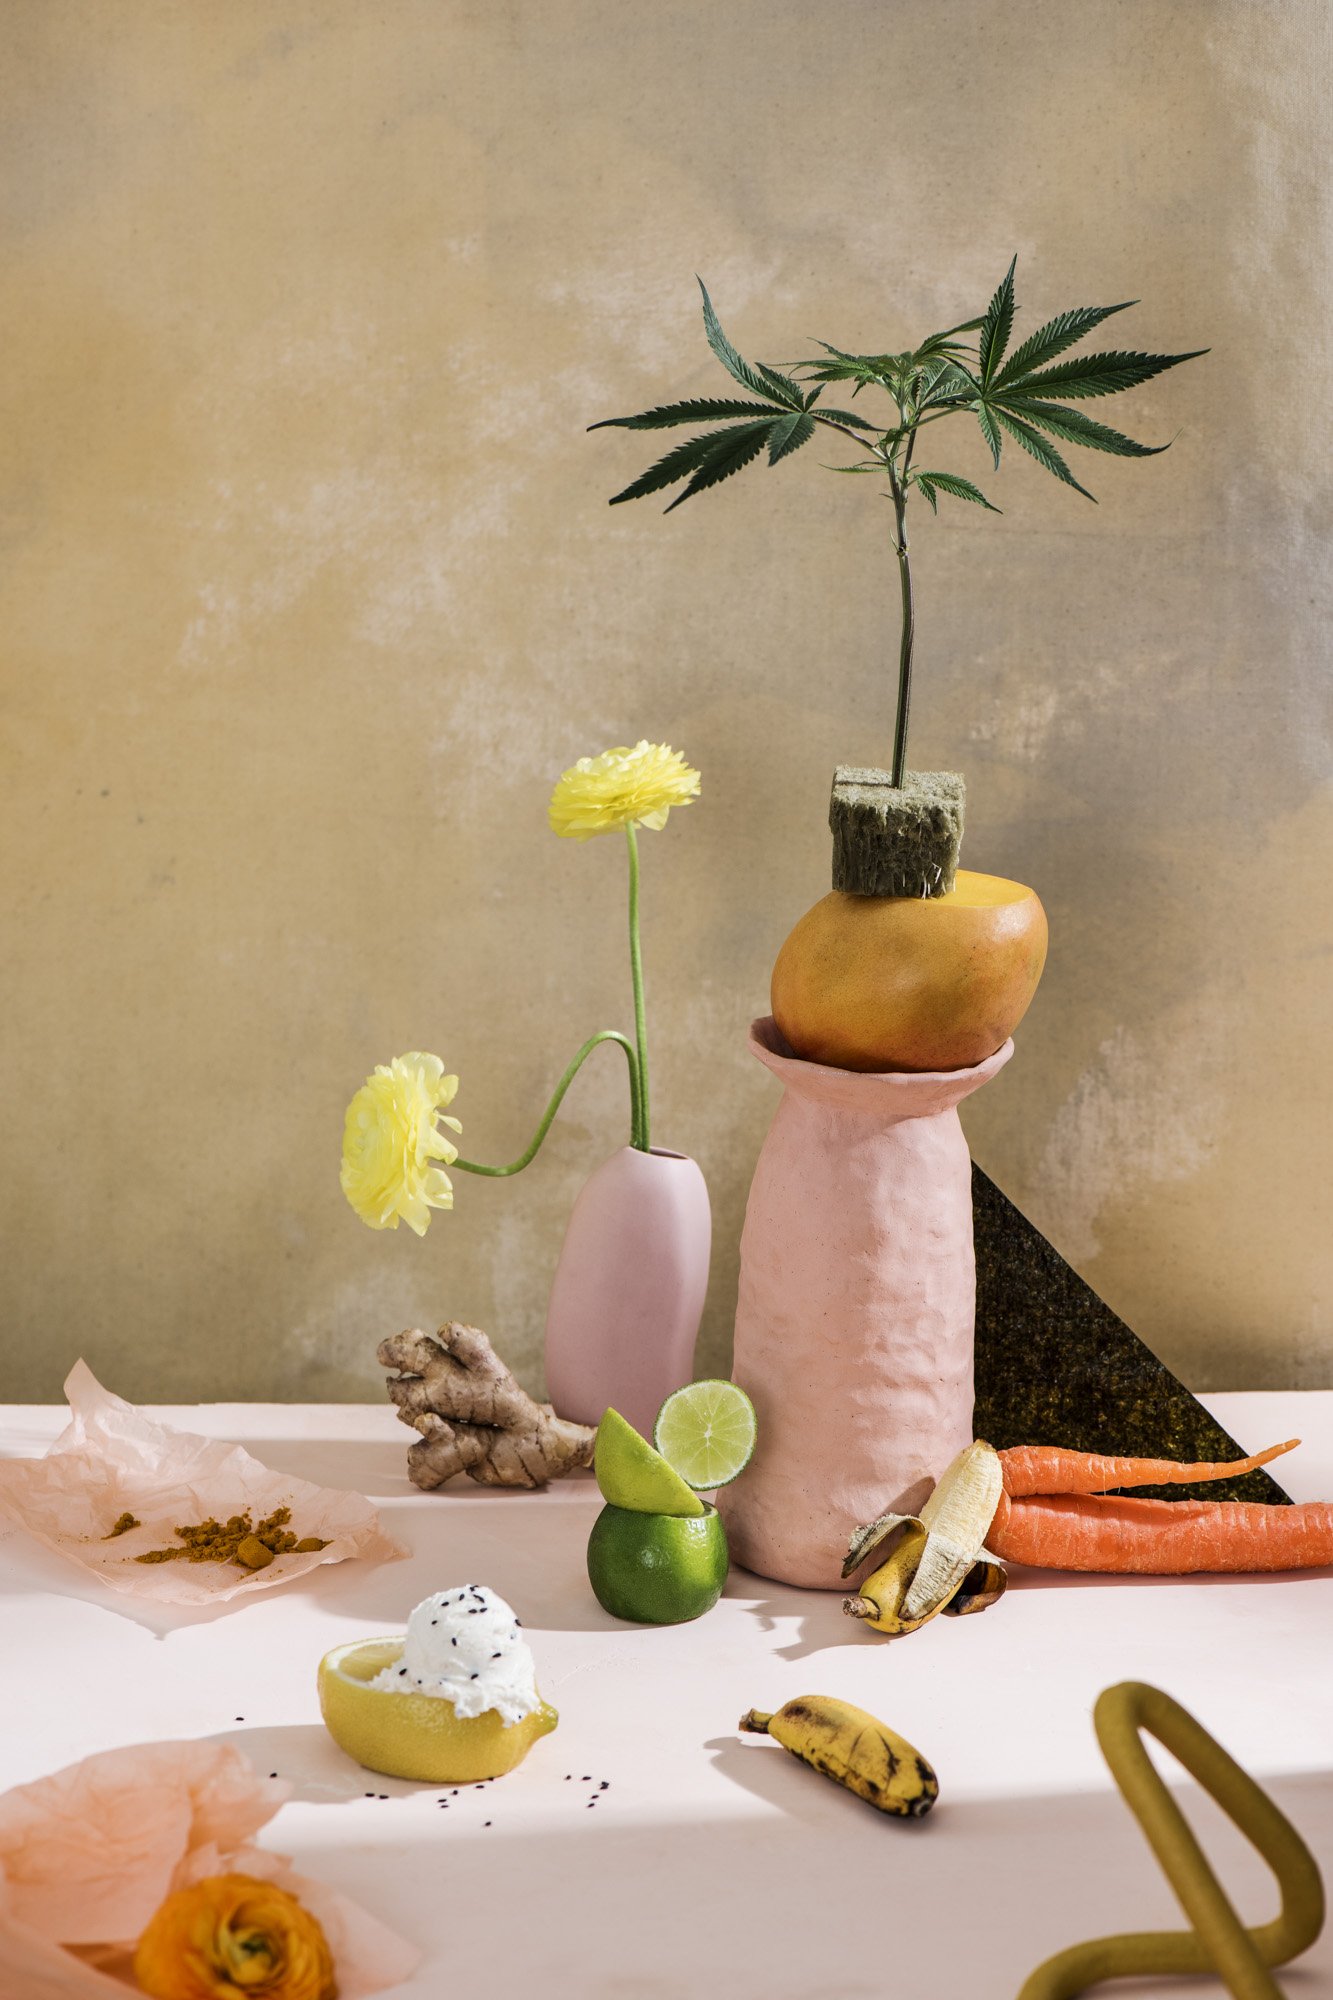 for  broccoli mag x healthyish x bon appetit  / photo by  julia stotz  / food styling by  casey dobbins  / props styling by  samantha margherita